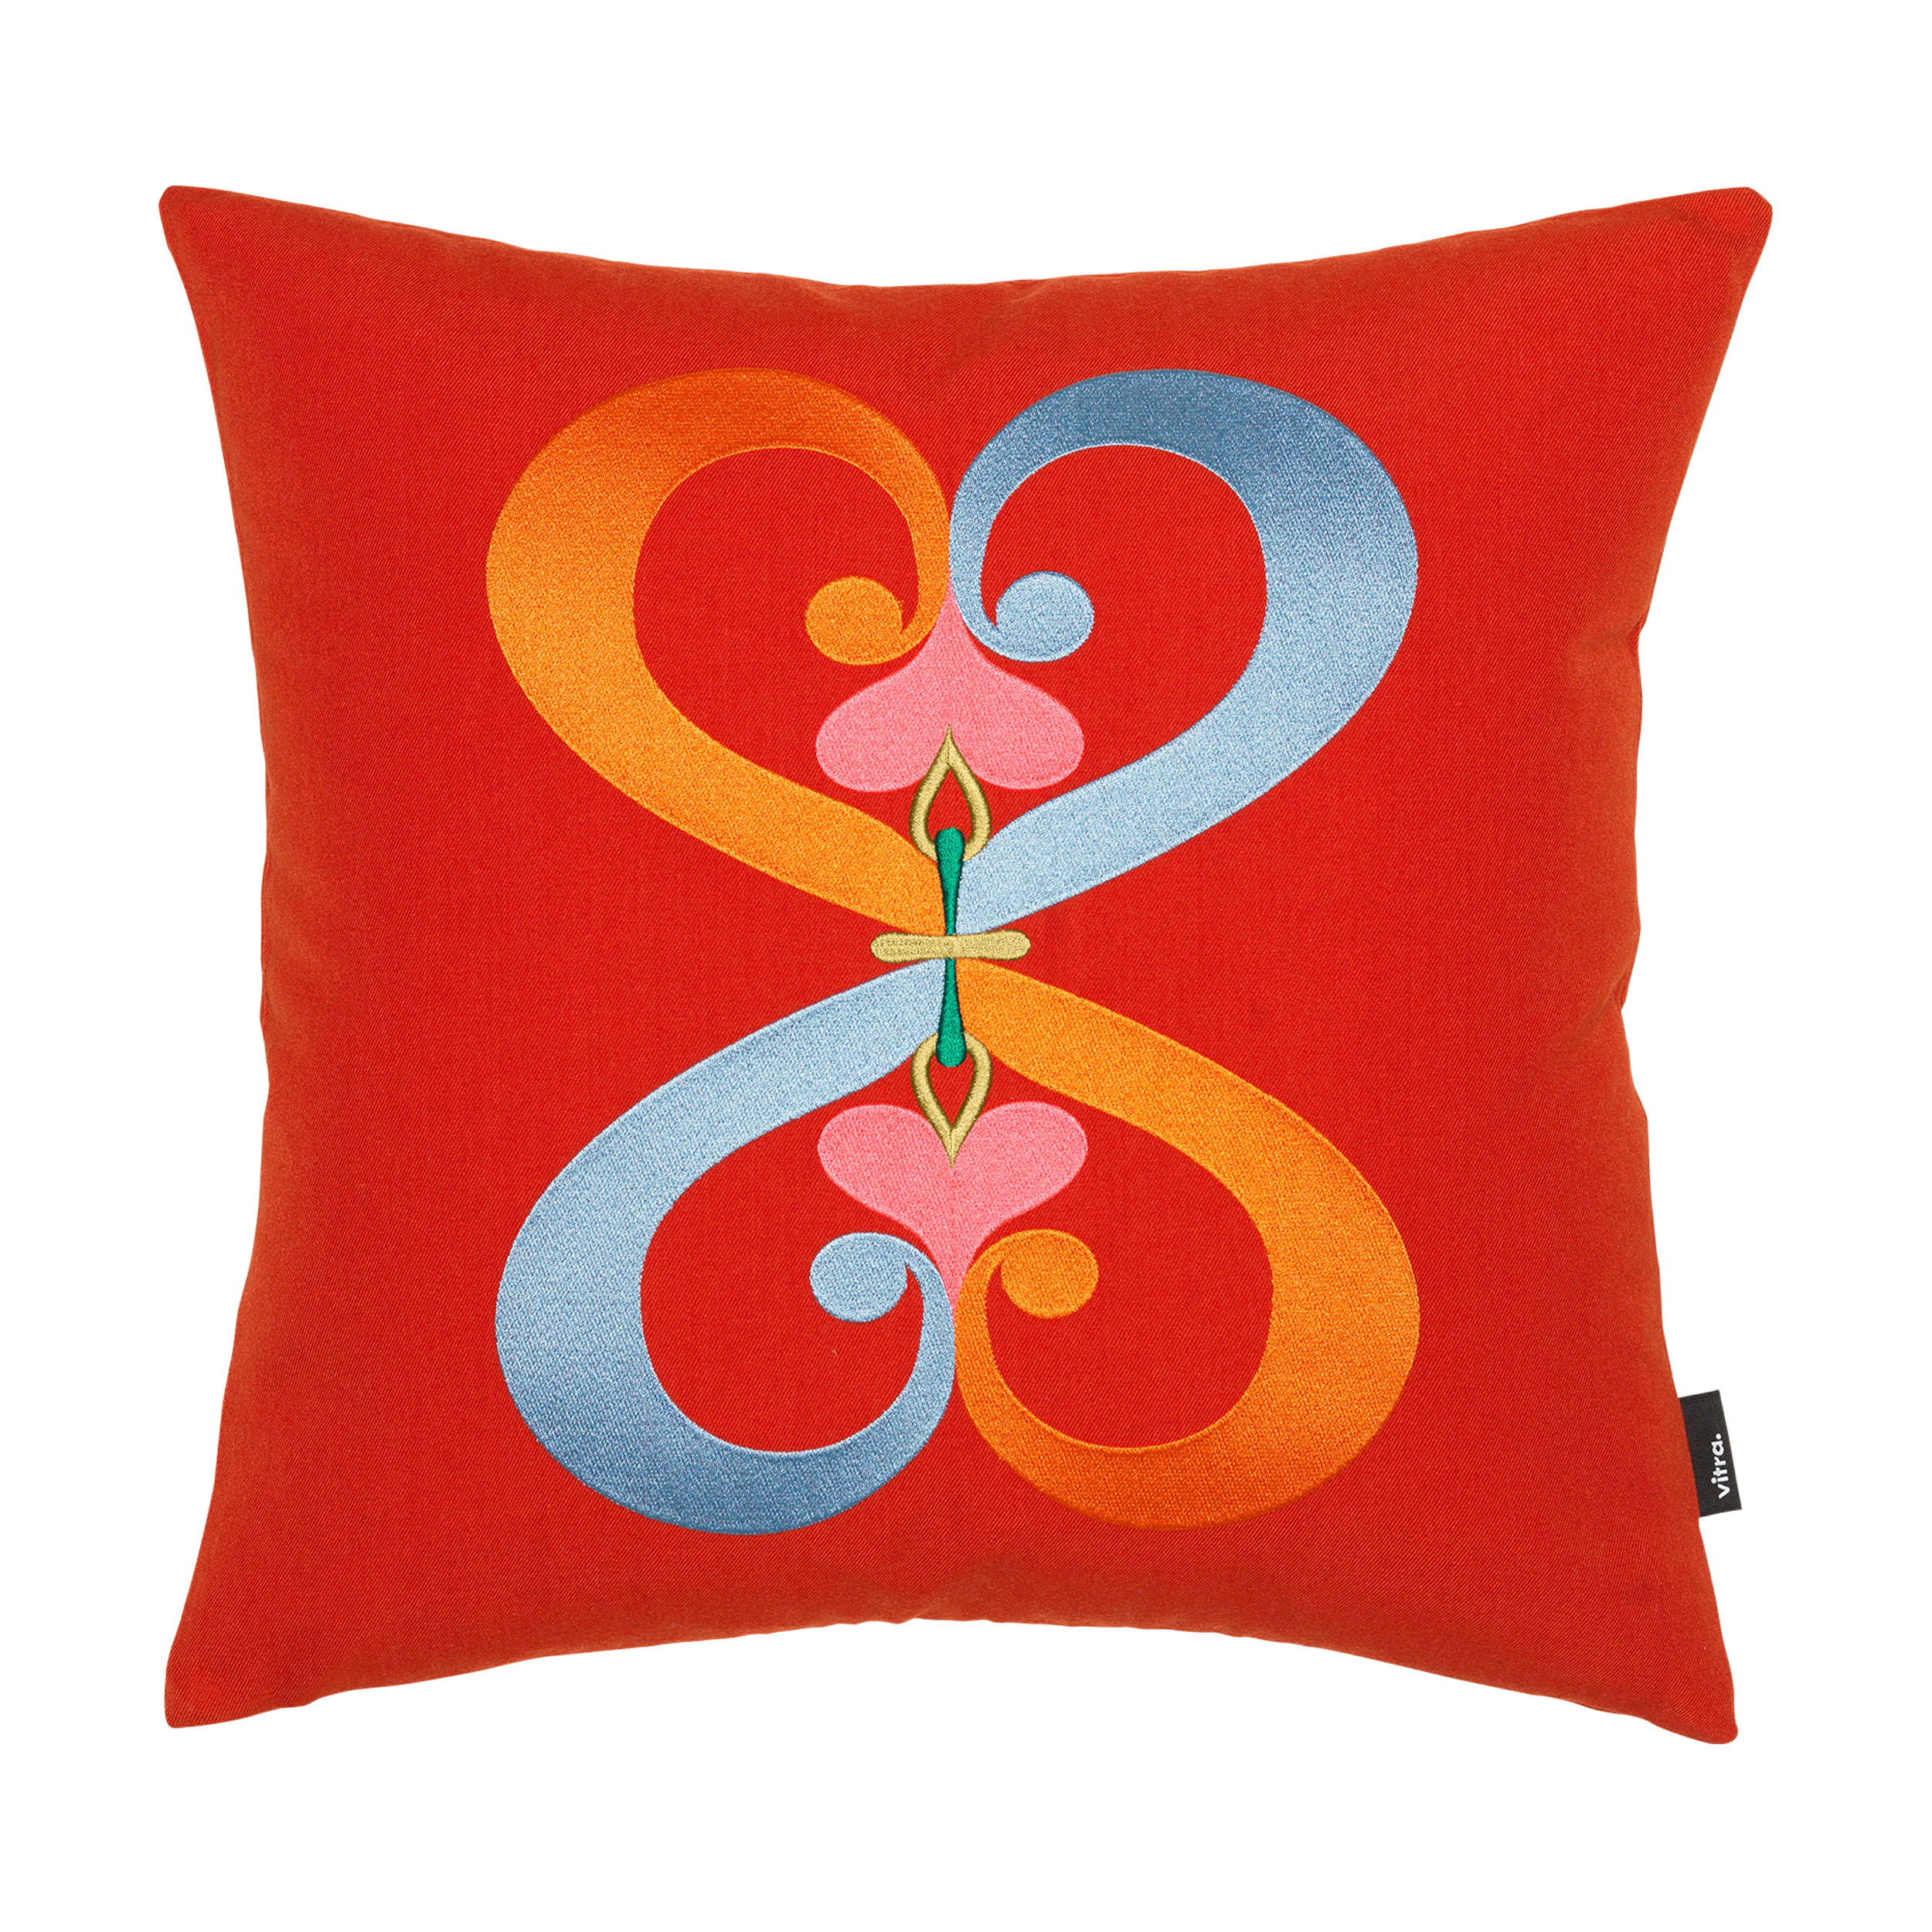 Embroidered Double Heart Kissen